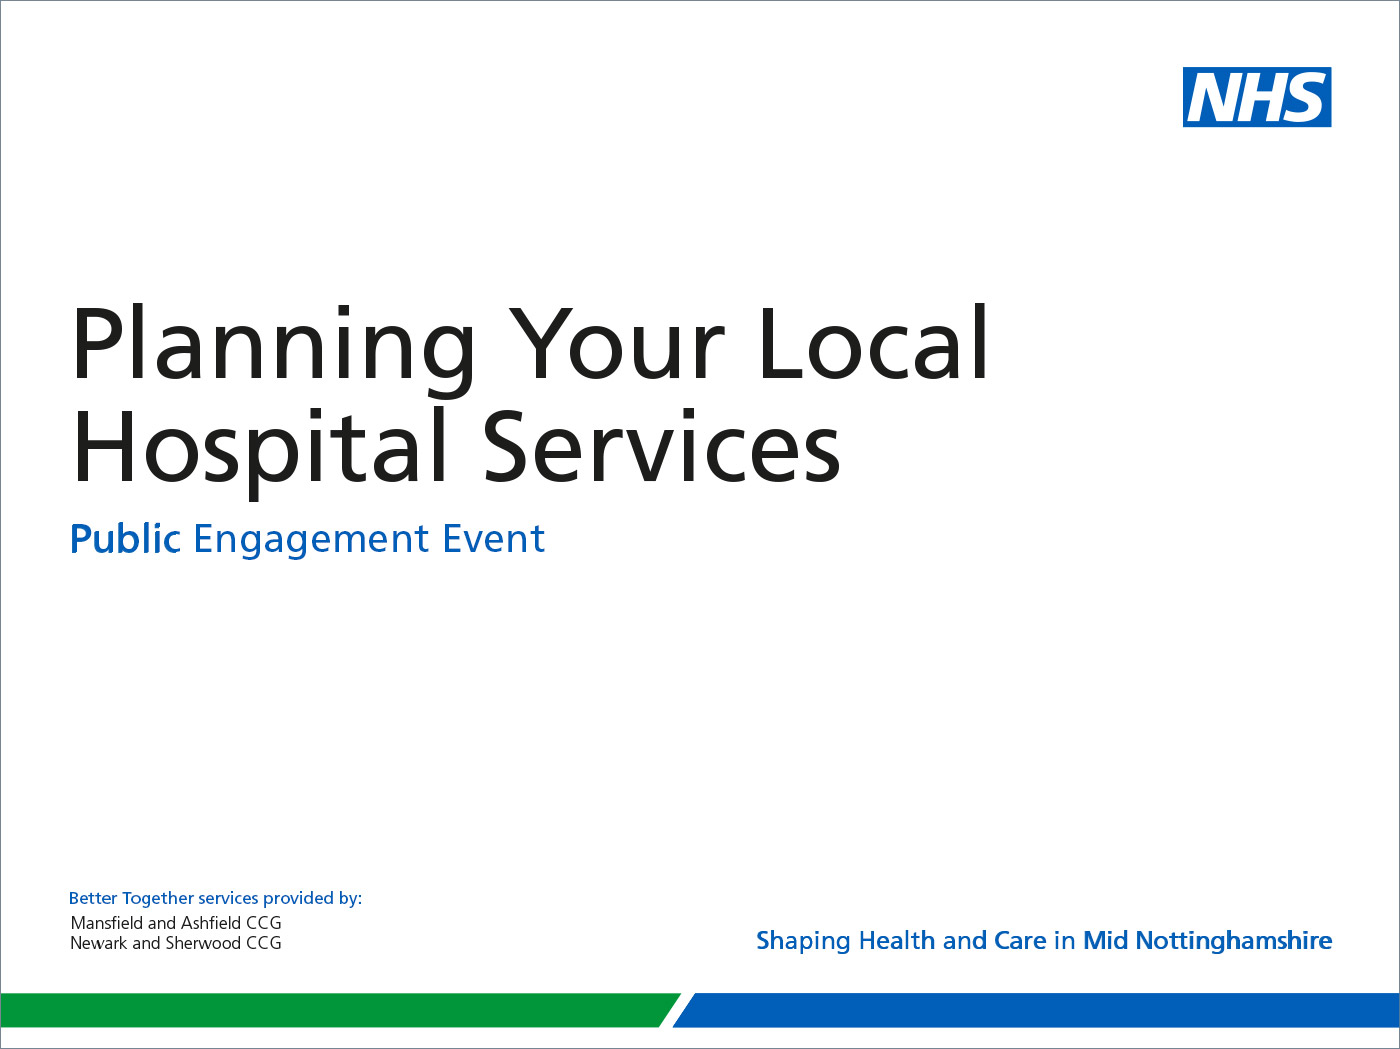 Nhs identity guidelines nhs partnership powerpoint presentation credit nhs mansfield and ashfield clinical commissioning group and nhs newark and sherwood clinical commissioning group toneelgroepblik Images